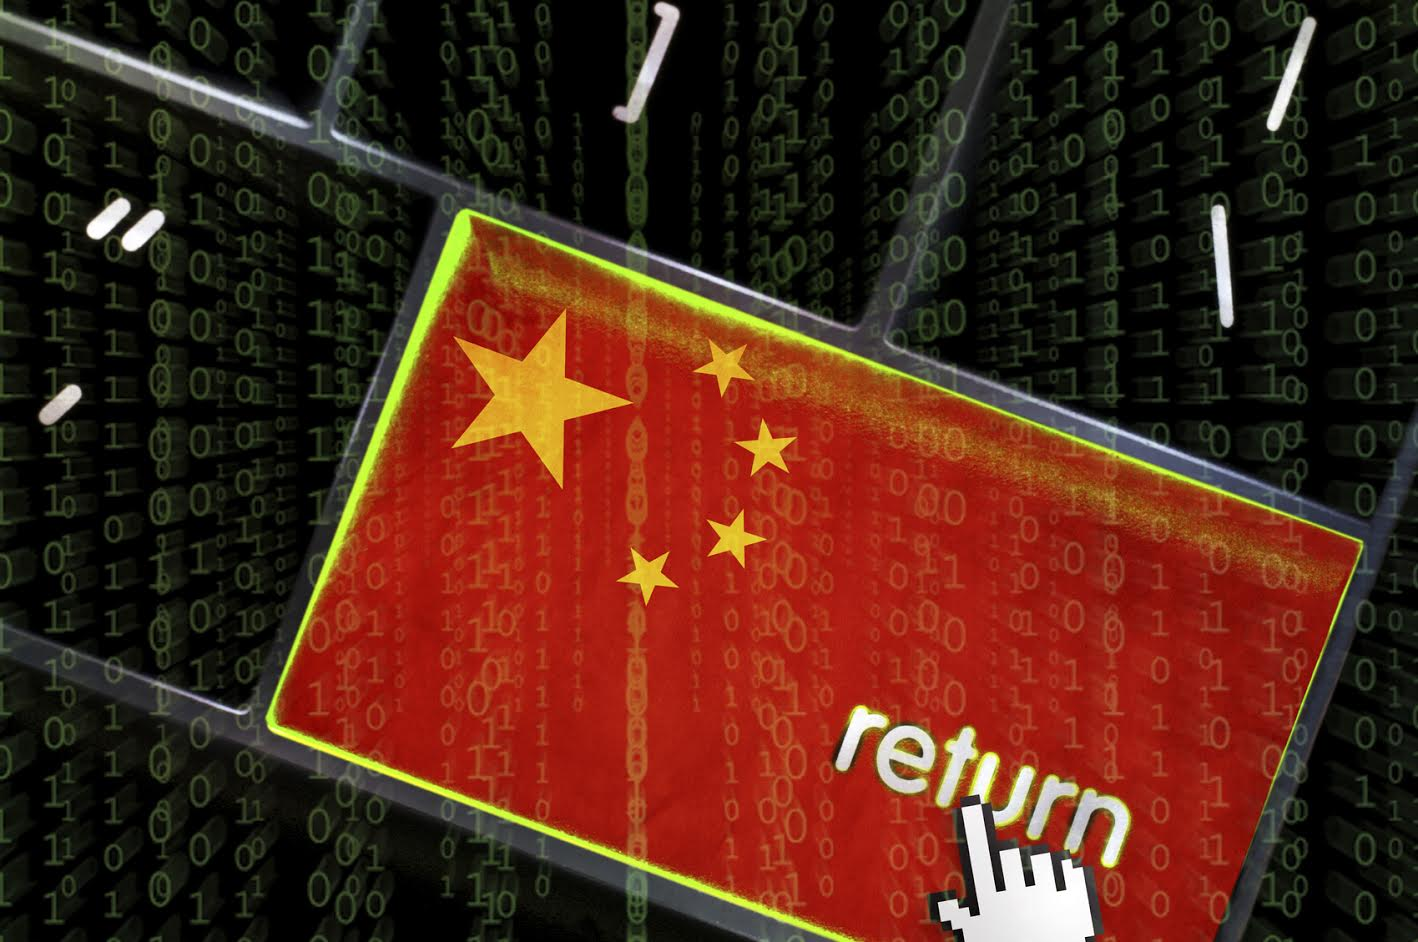 China renews call for heightened scrutiny of tech sector and tighter cybersecurity